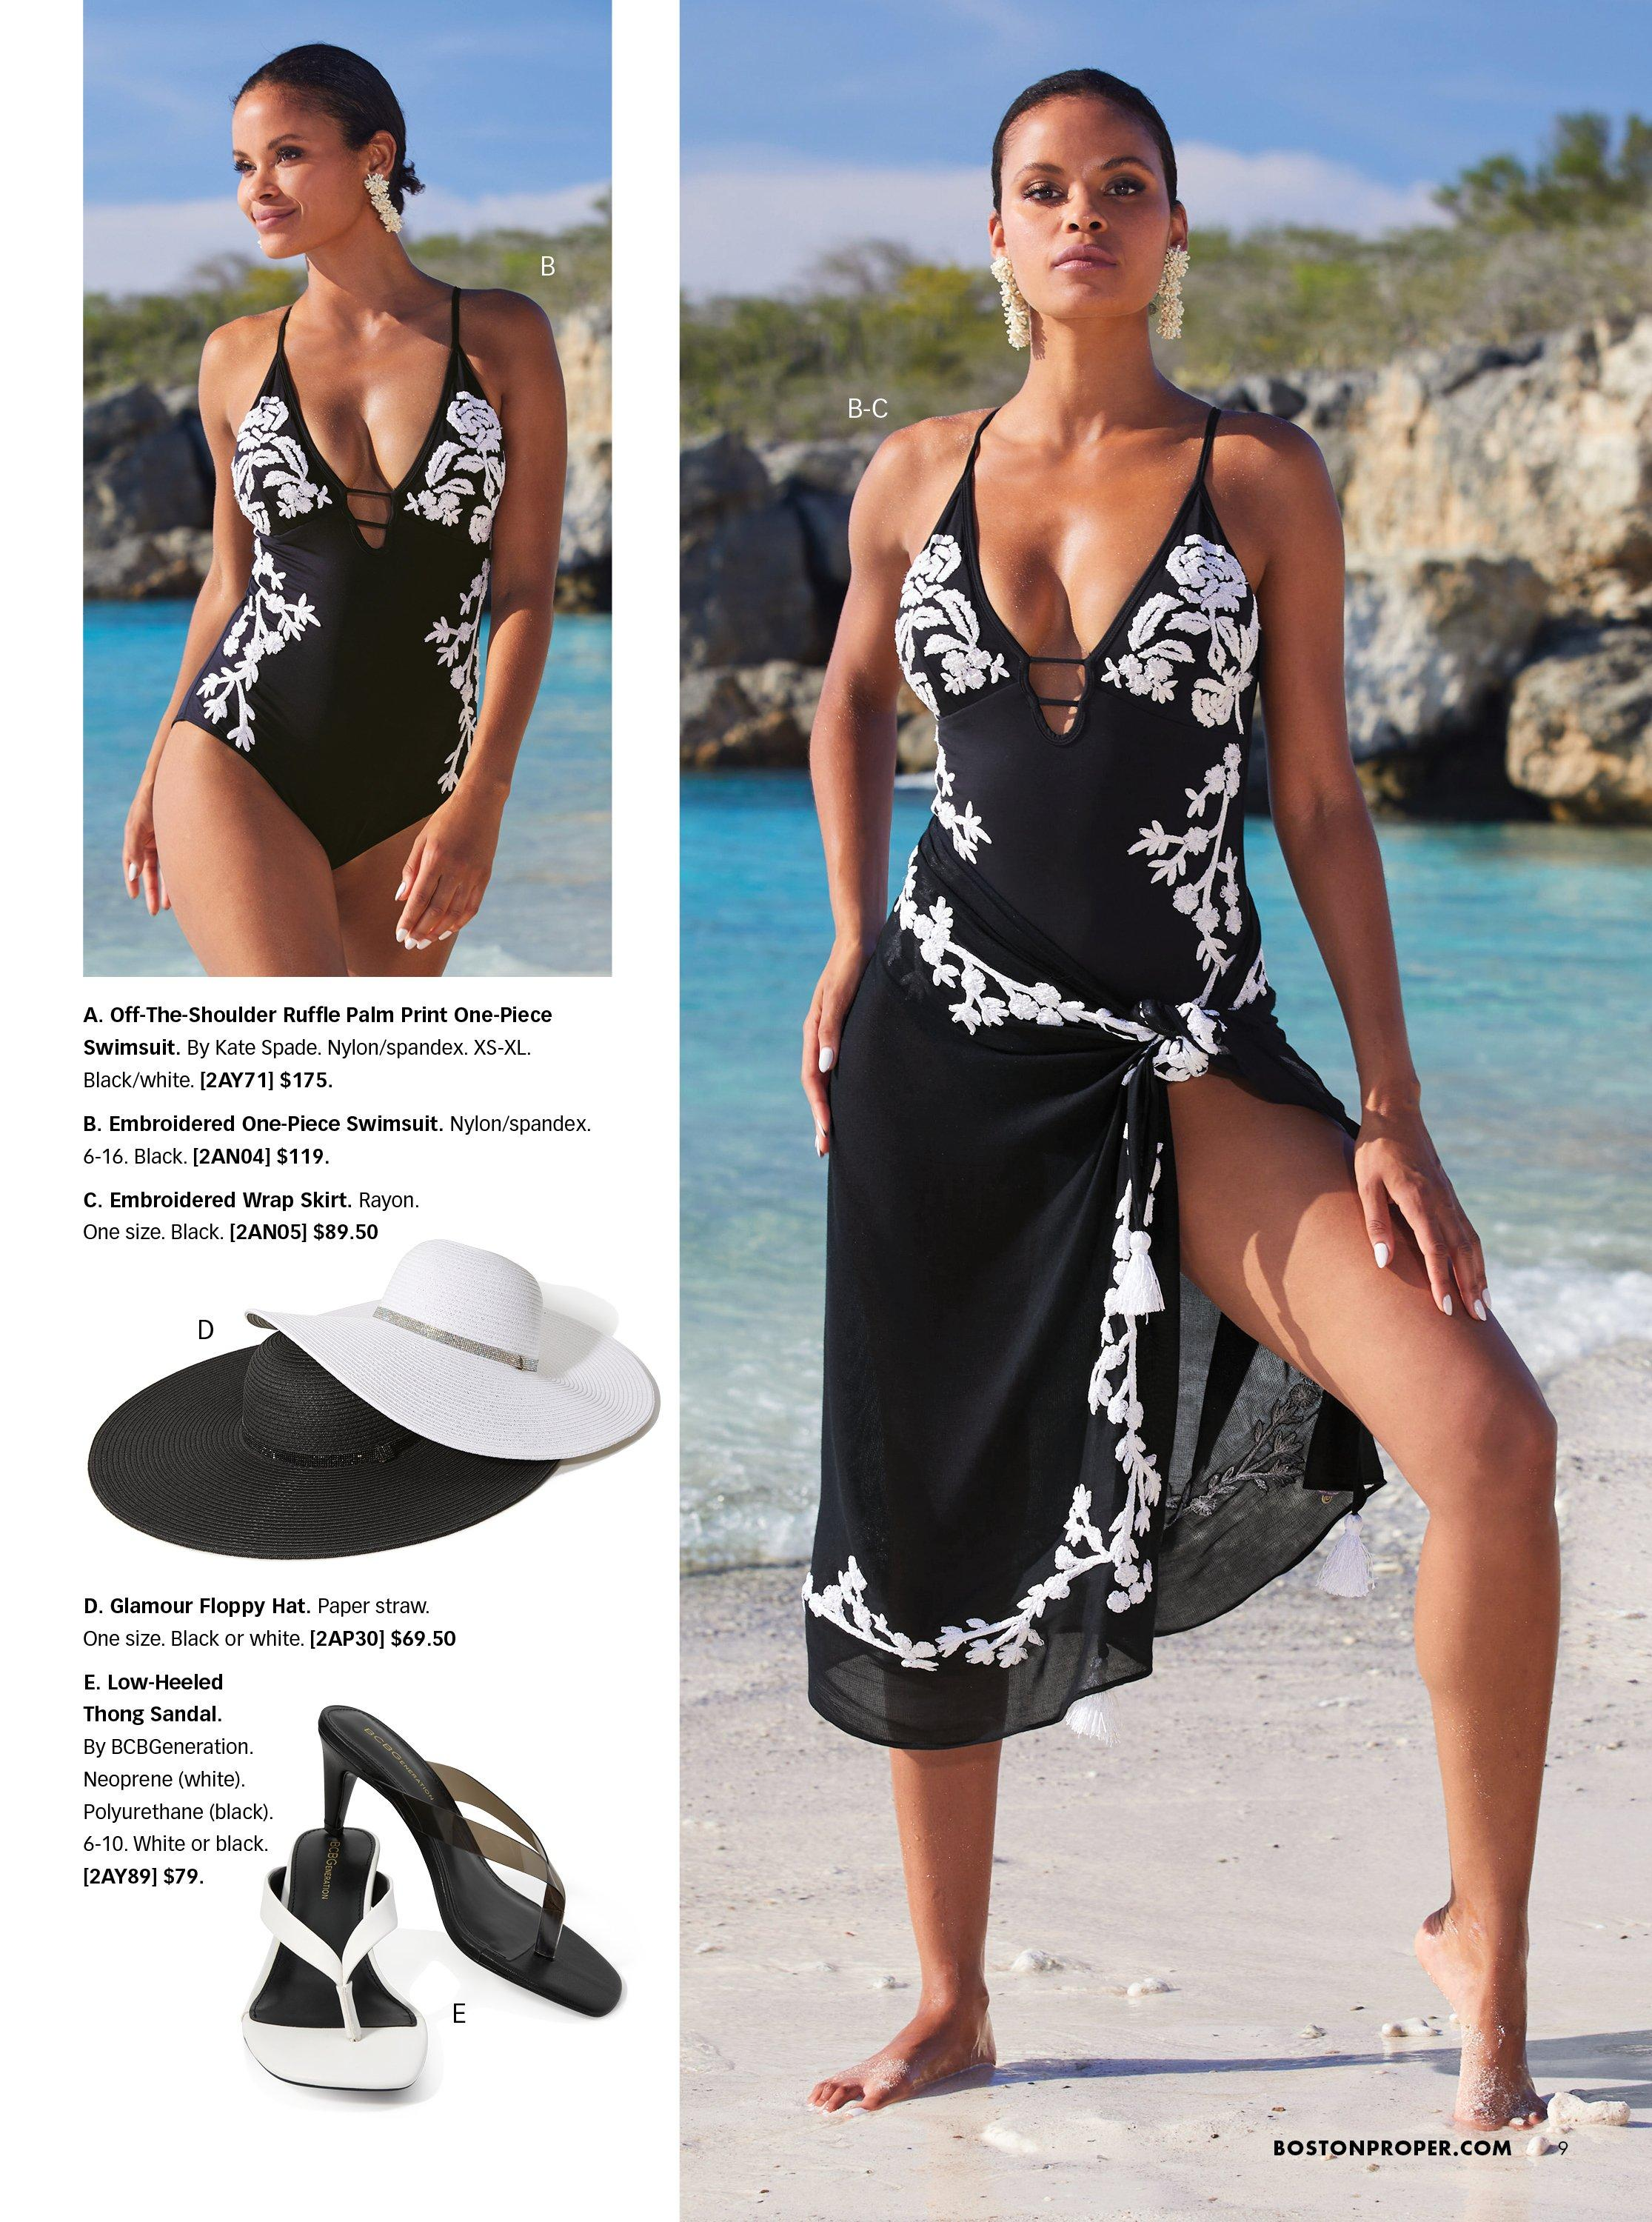 top left model wearing a black one piece swimsuit embroidered with white flowers. bottom left show one black and one white floppy hat and one black and one white heeled thong sandal. right model wearing a black one piece swimsuit with embroidered white flowers and a matching skirt.